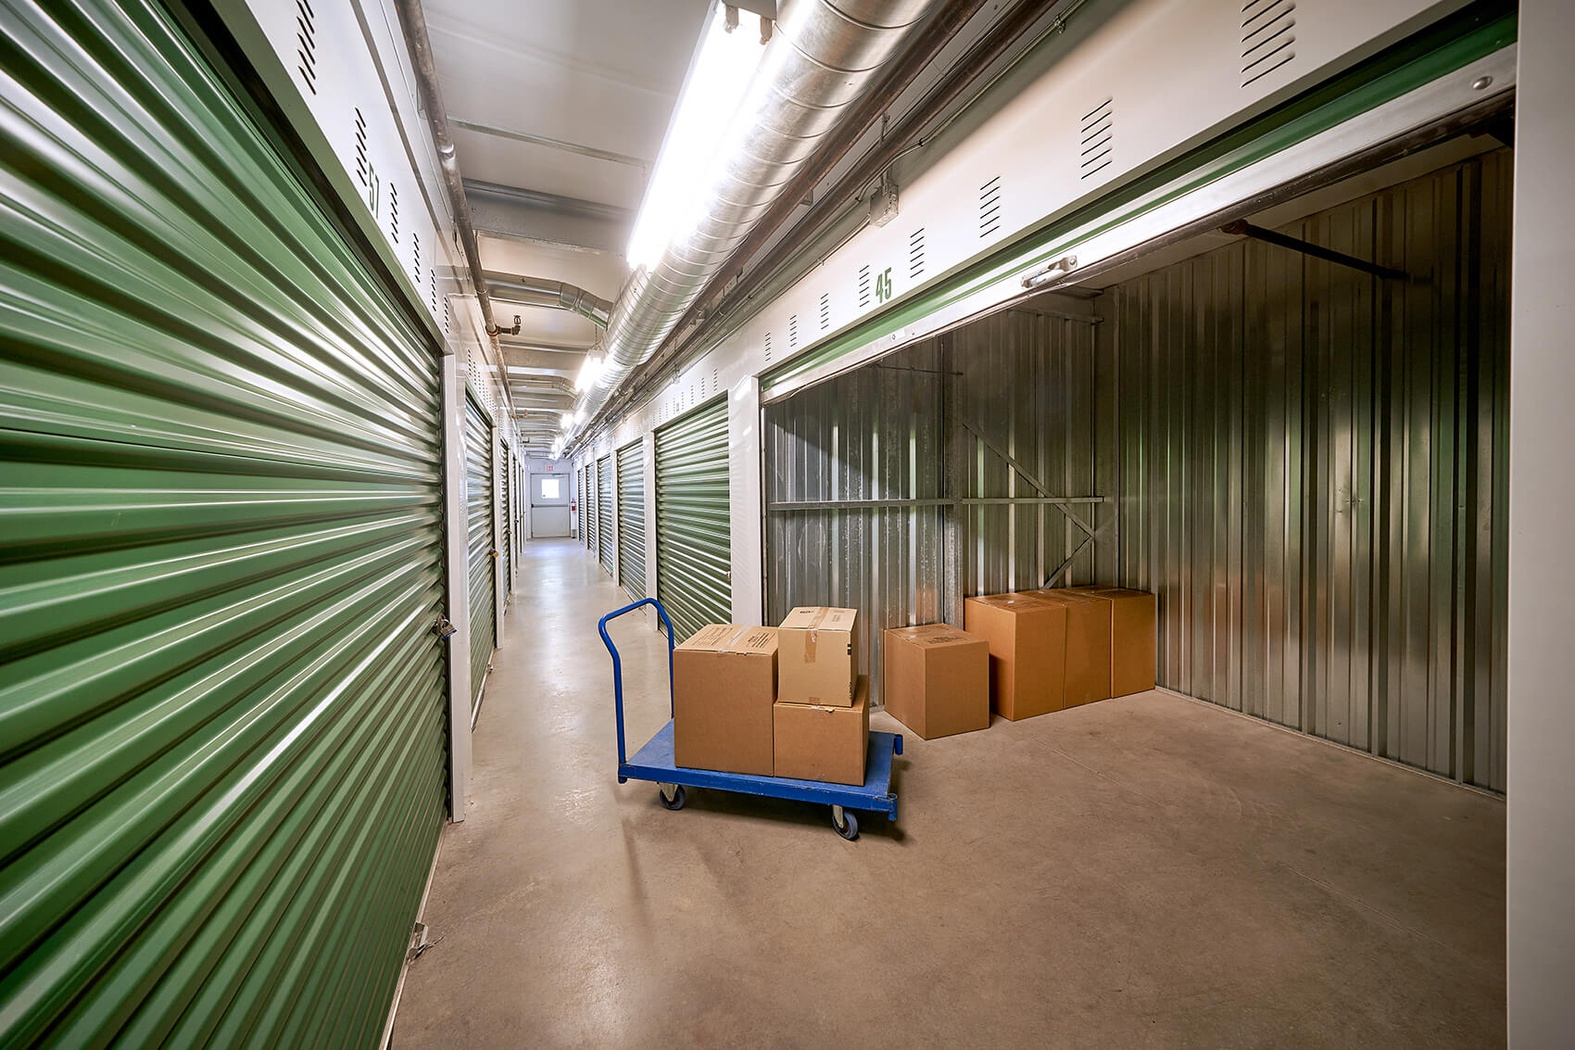 Rent Sarnia Point Edward storage units at 301 Front St. We offer a wide-range of affordable self storage units and your first 4 weeks are free!